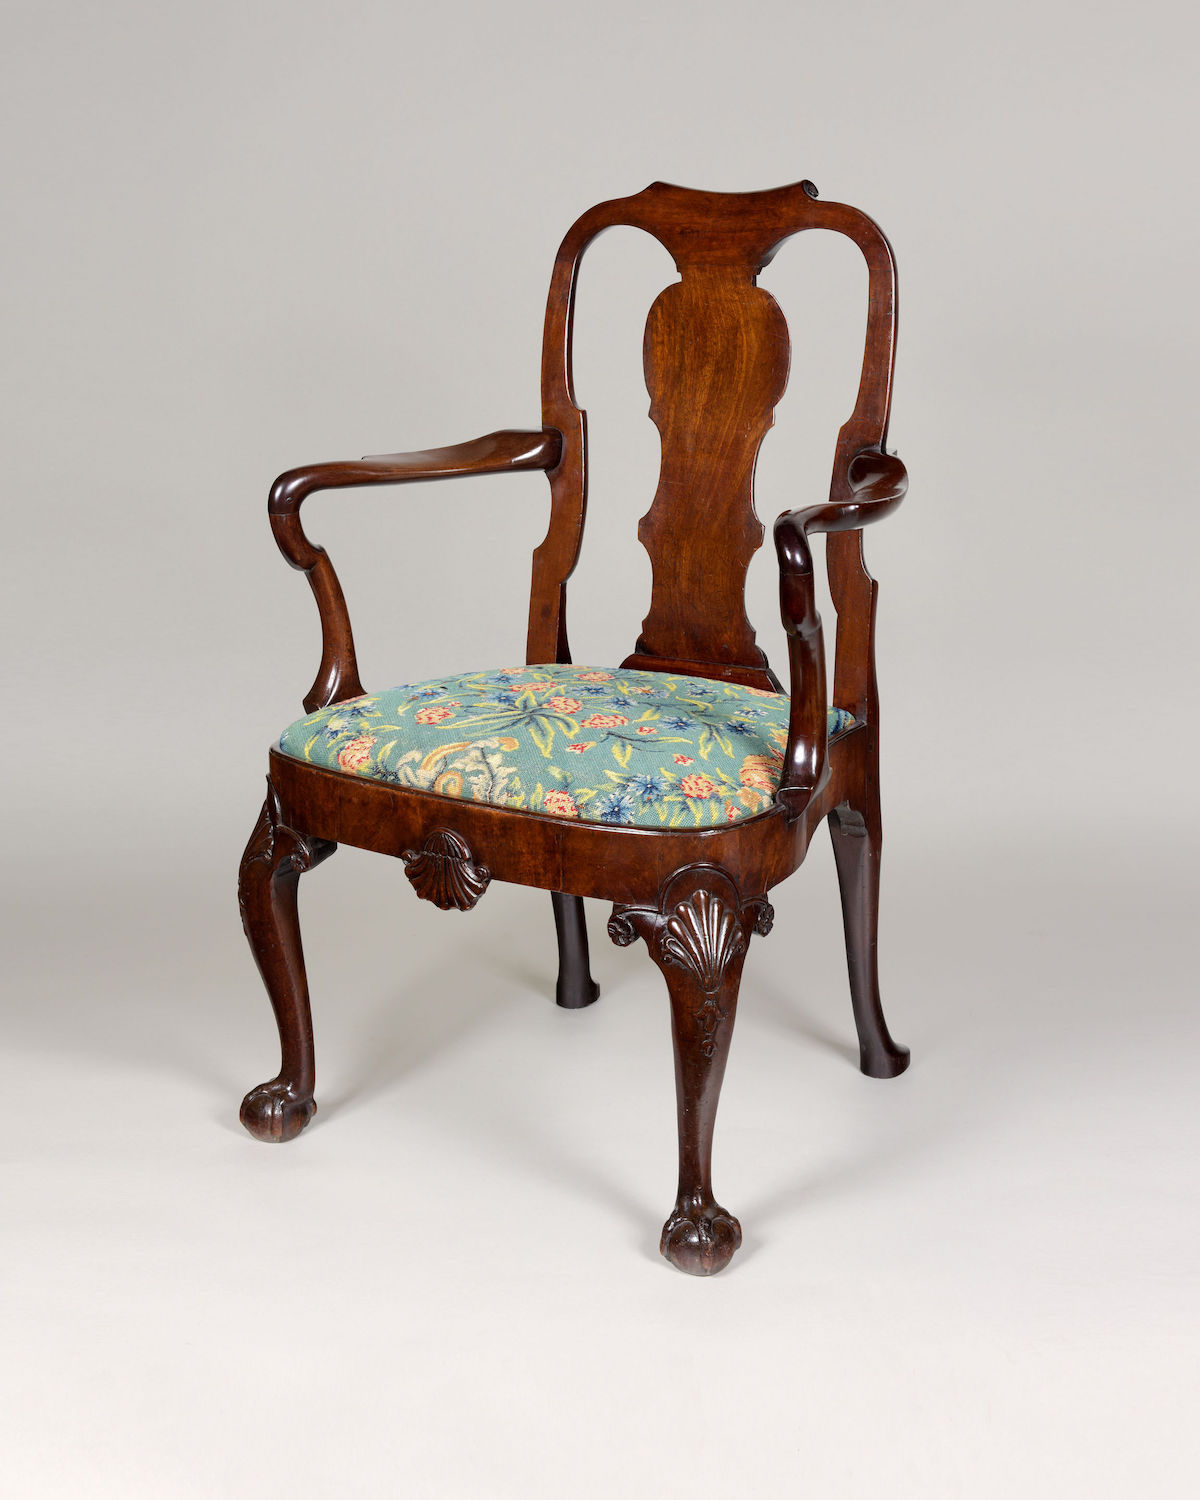 A FINE GEORGE II PERIOD MAHOGANY OPEN ARMCHAIR